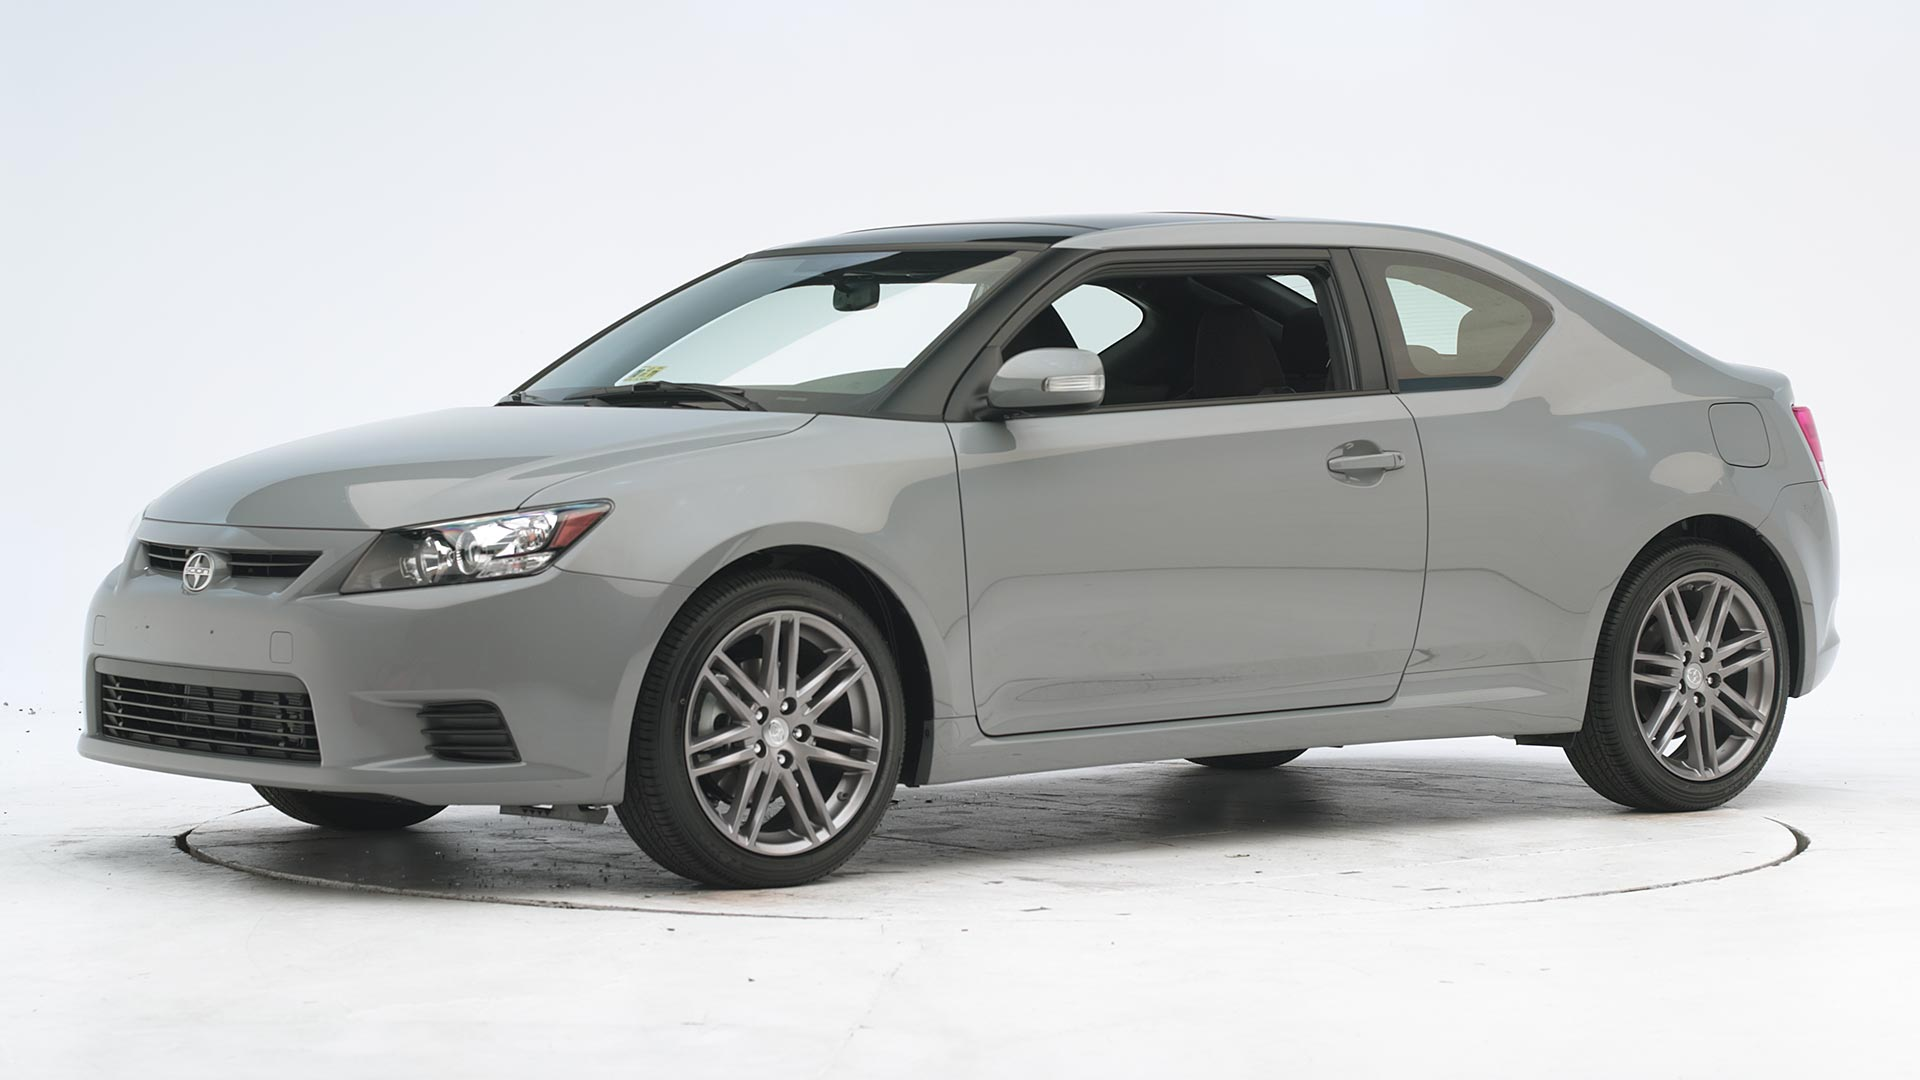 2011 Scion tC 2-door hatchback